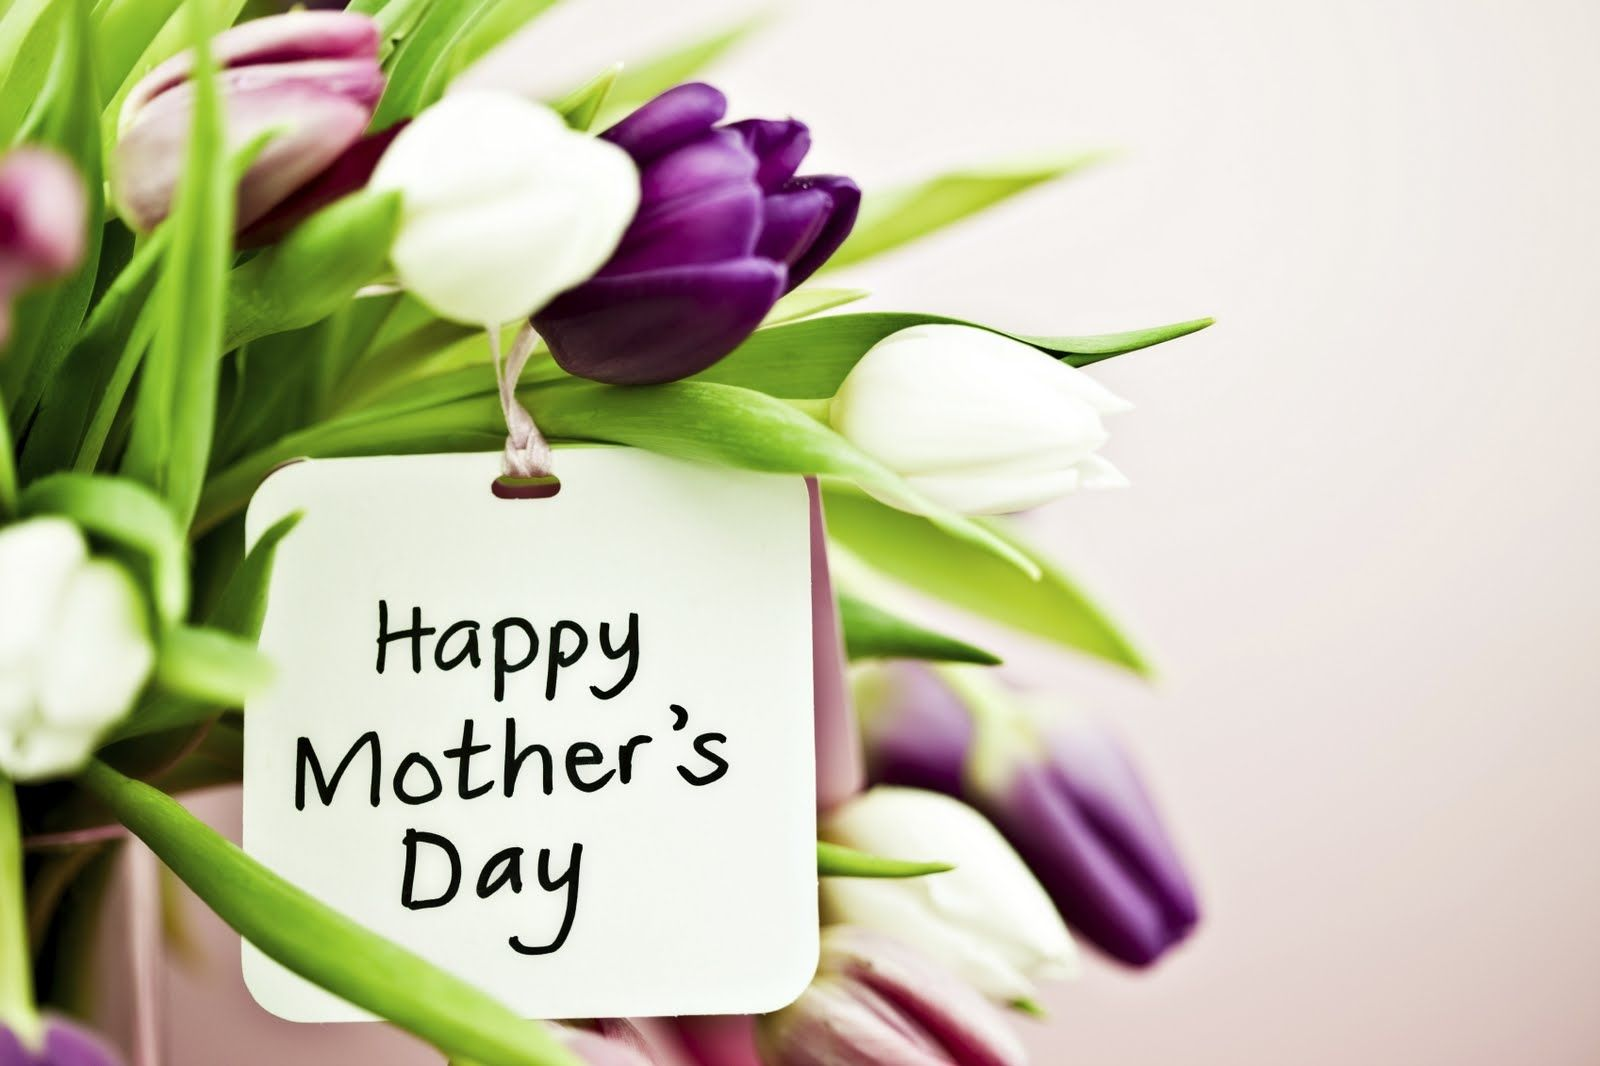 Happy Mother S Day To All The Moms Out There Mother Day Wishes Happy Mother Day Quotes Mothers Day Images